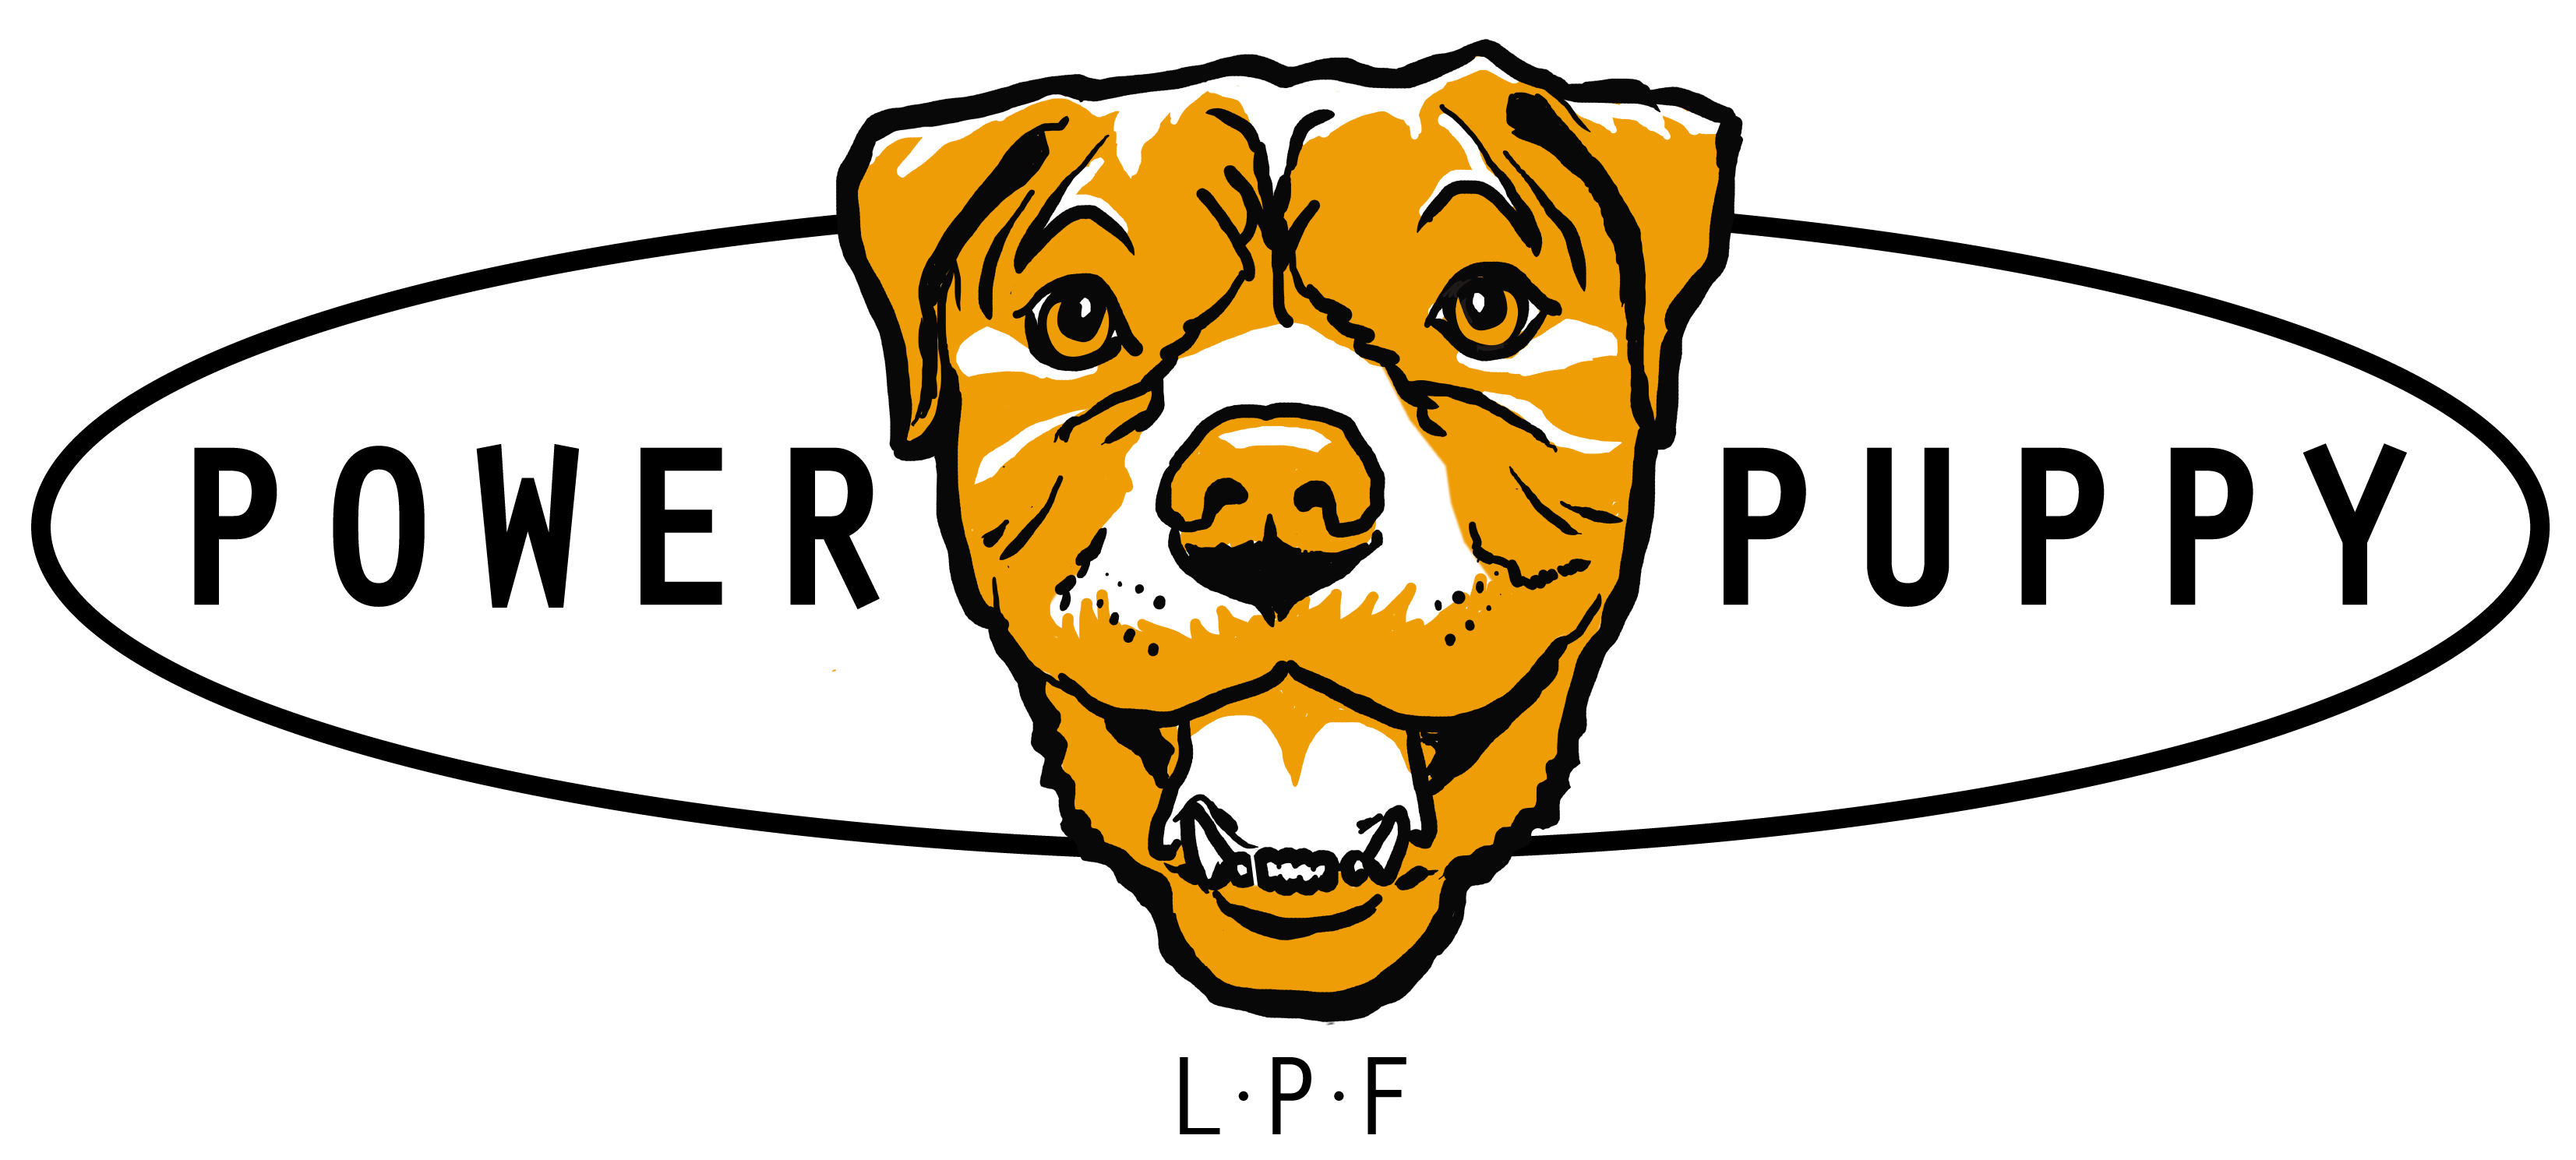 Powerpuppy Behavior and Training